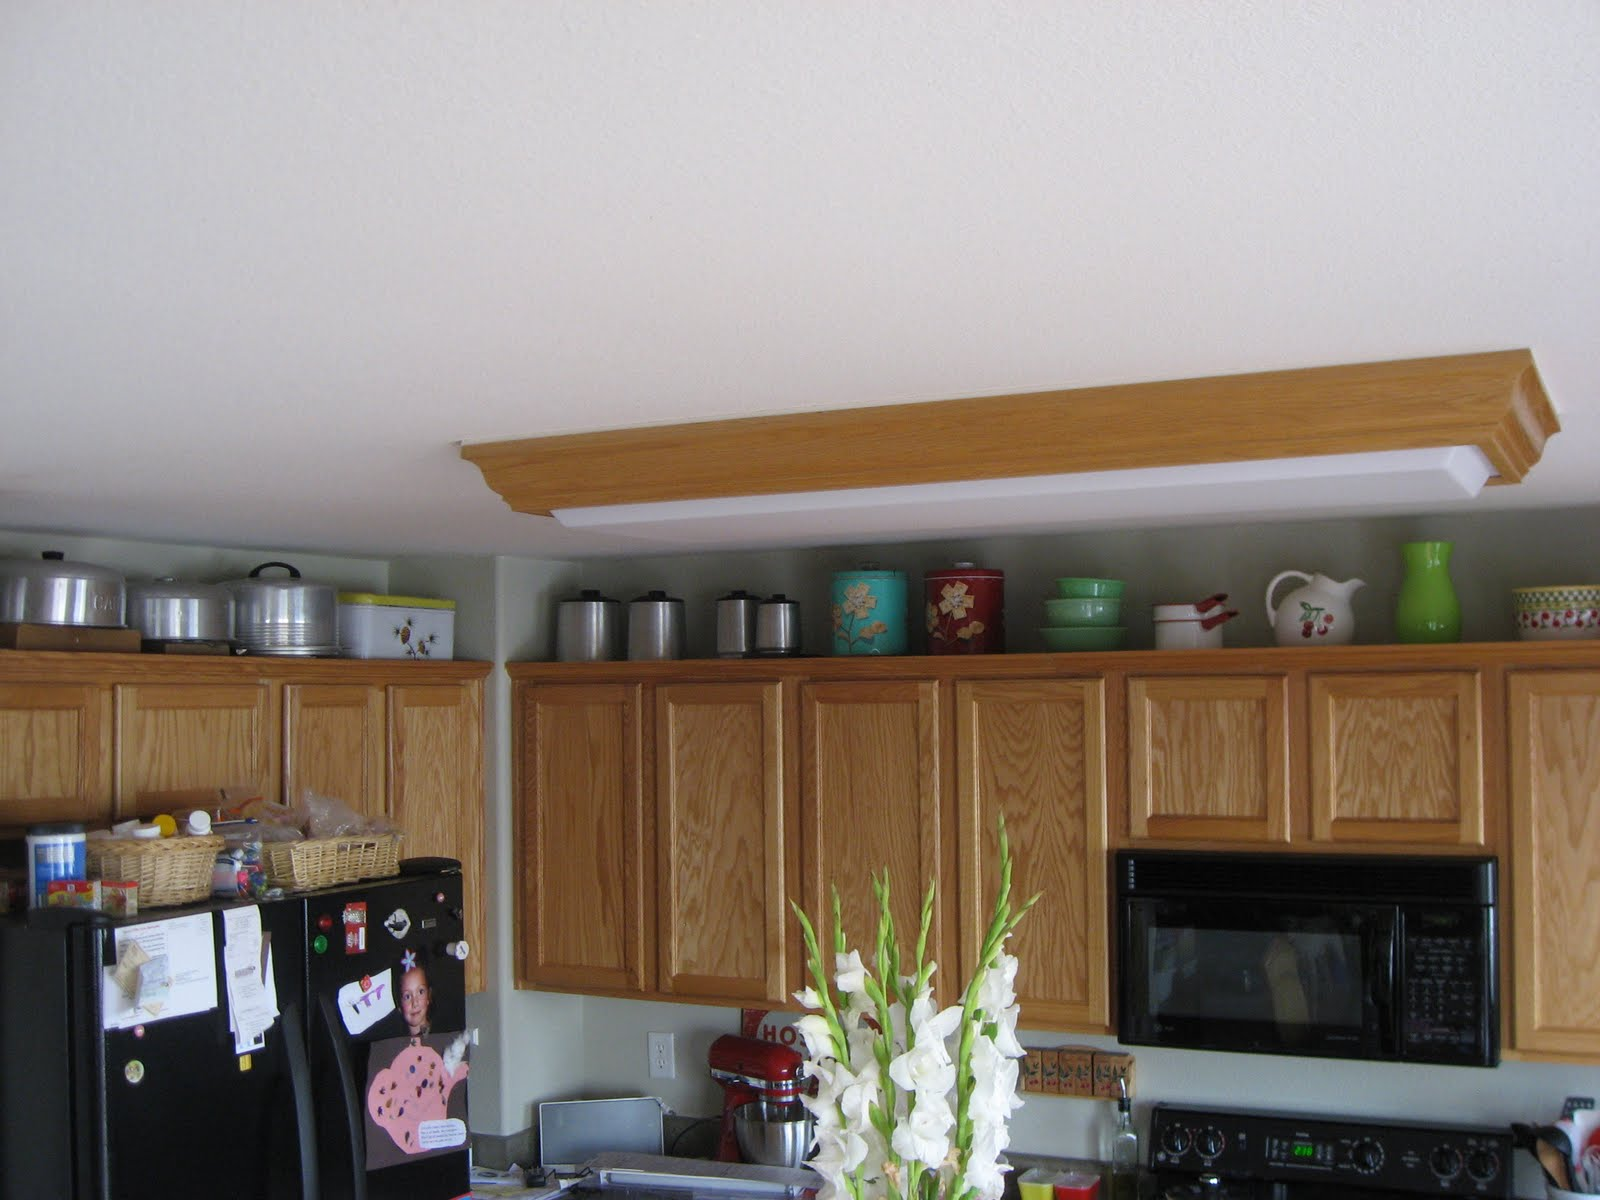 Decorating kitchen cabinets afreakatheart for On top of kitchen cabinet decorating ideas